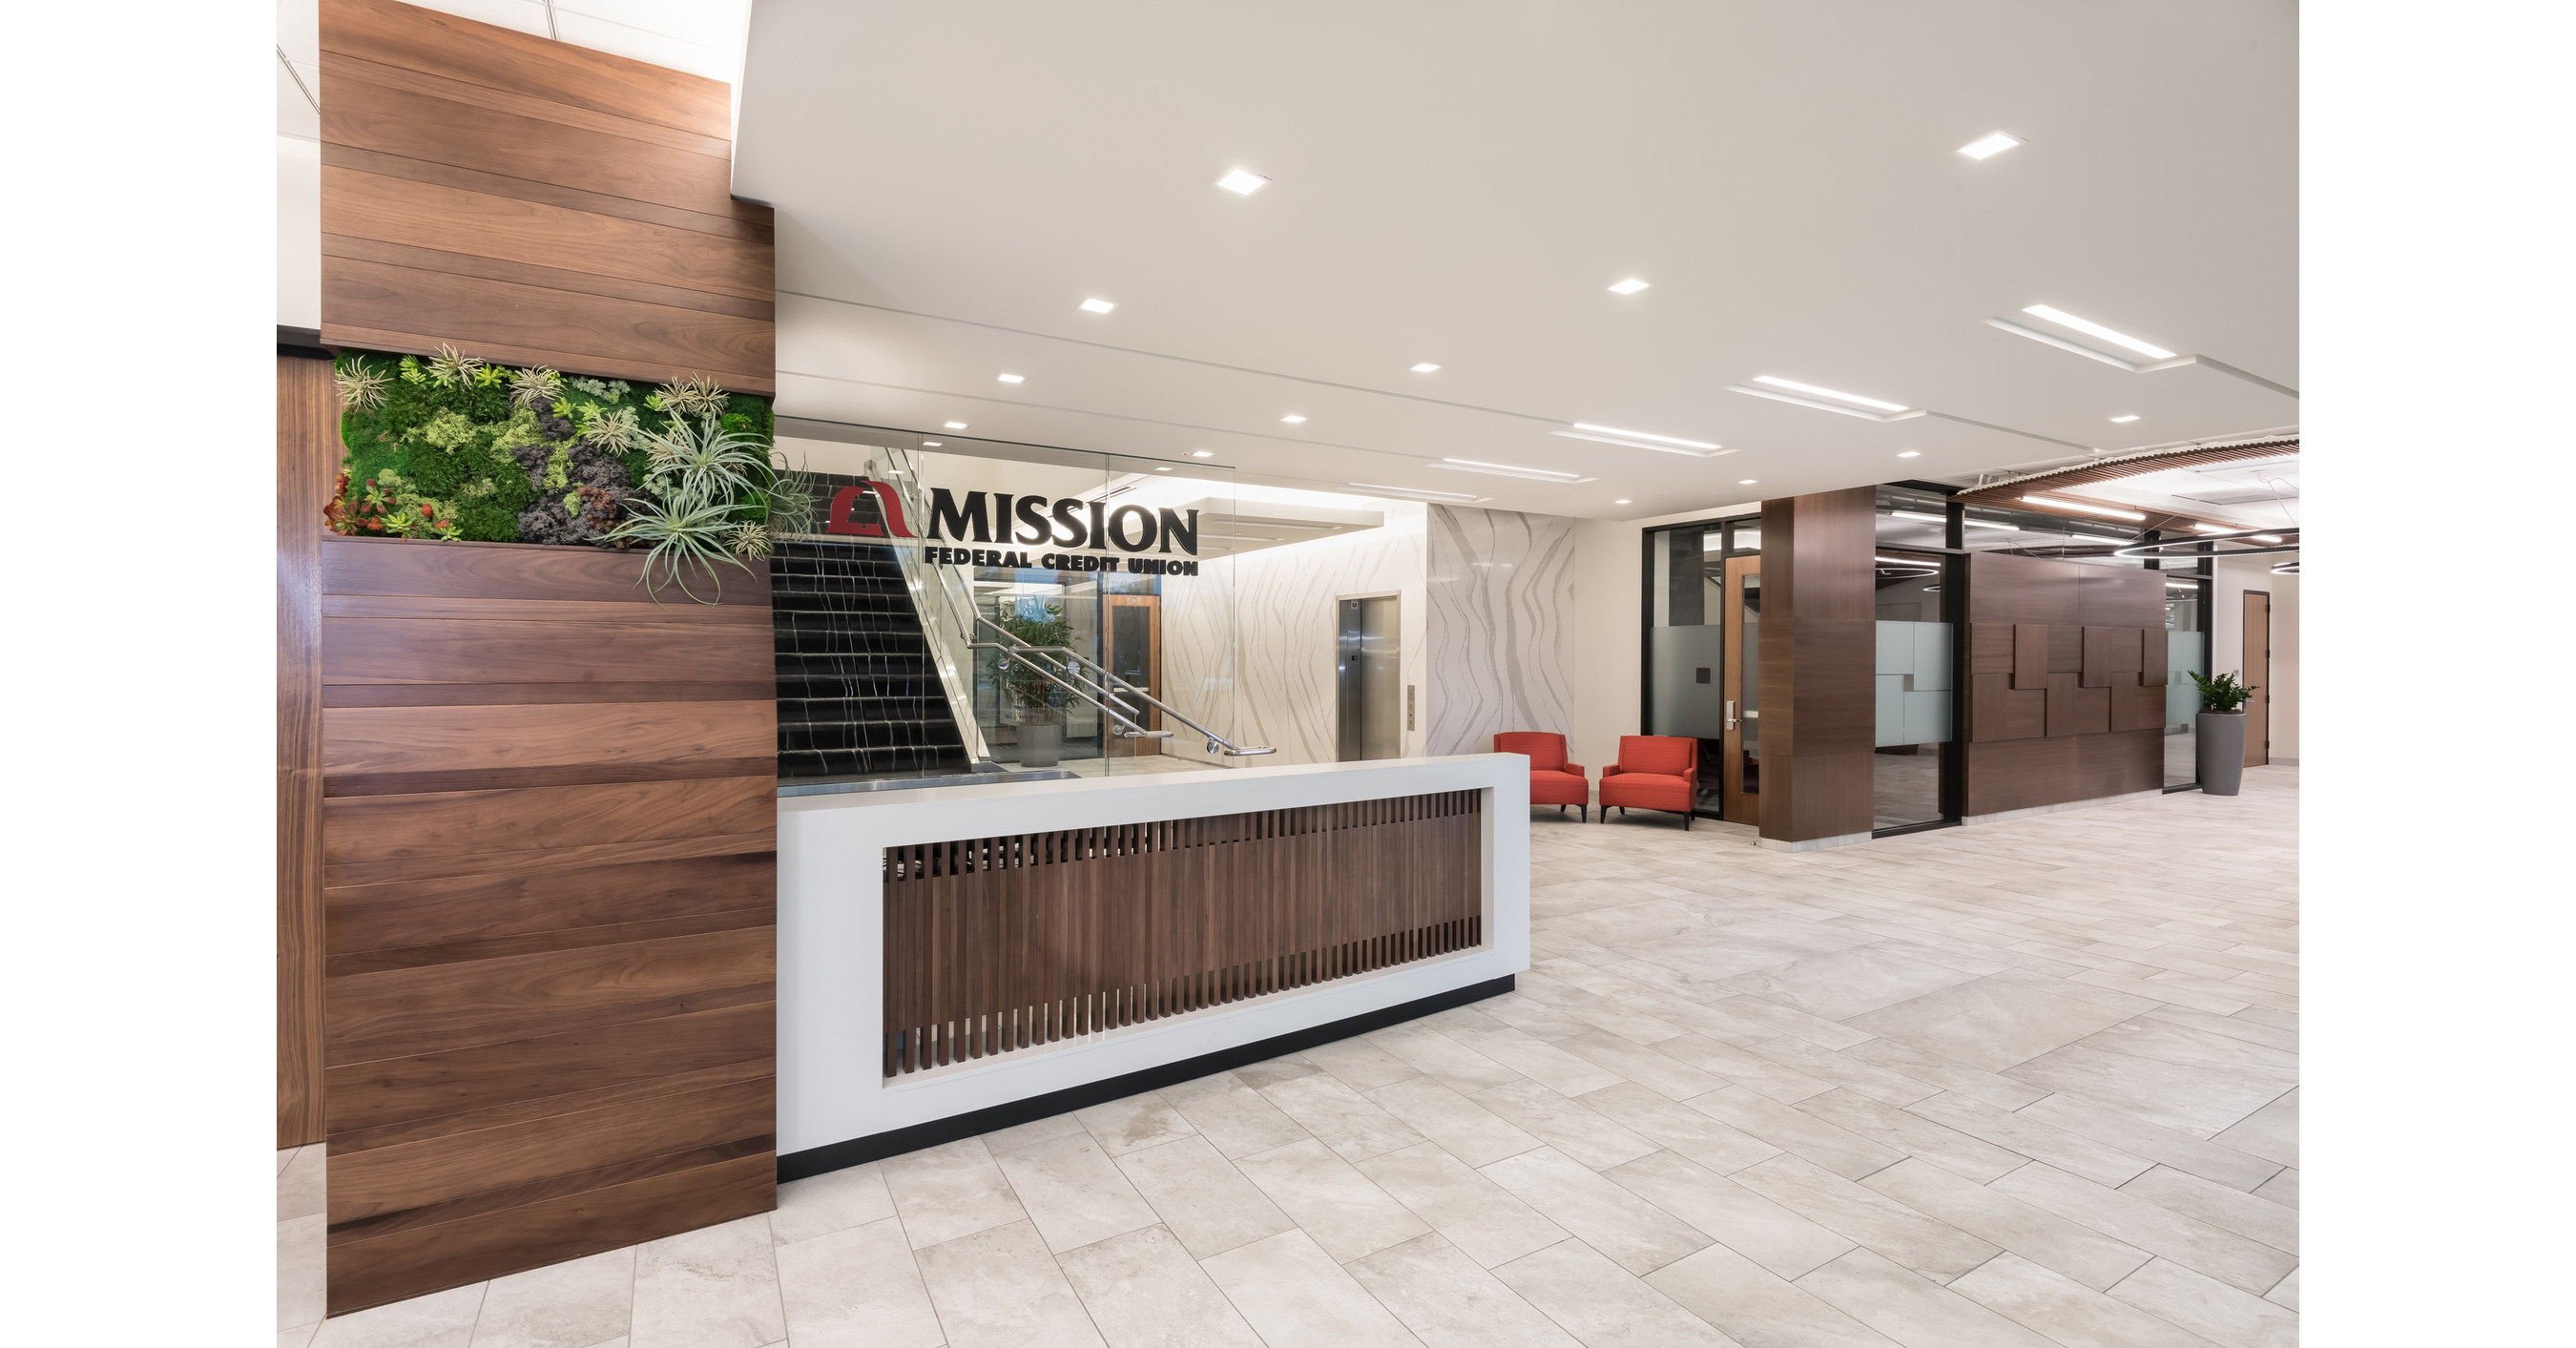 Mission Federal Credit Union S New Headquarters Boasts Function And Plenty Of Aesthetics